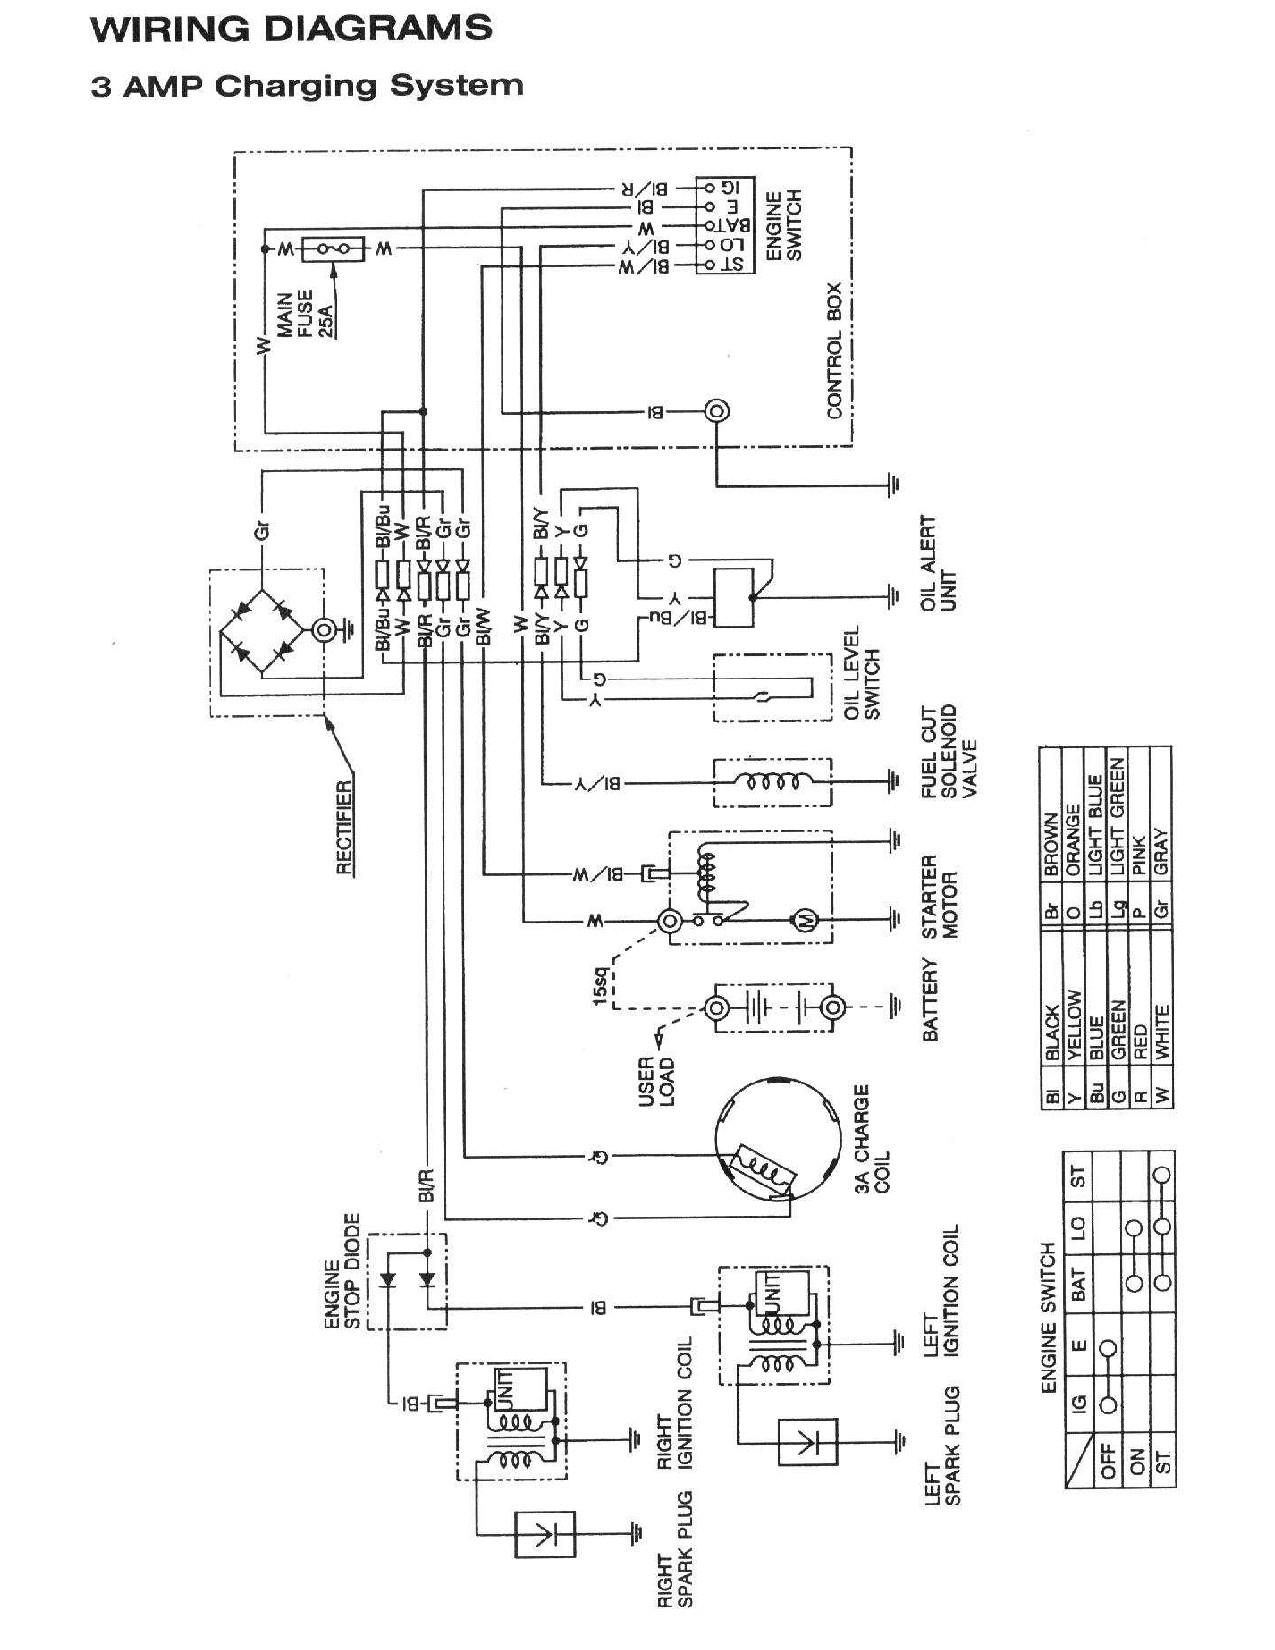 hight resolution of gx390 coil wiring diagram wiring diagram technic honda gx390 charging system wiring